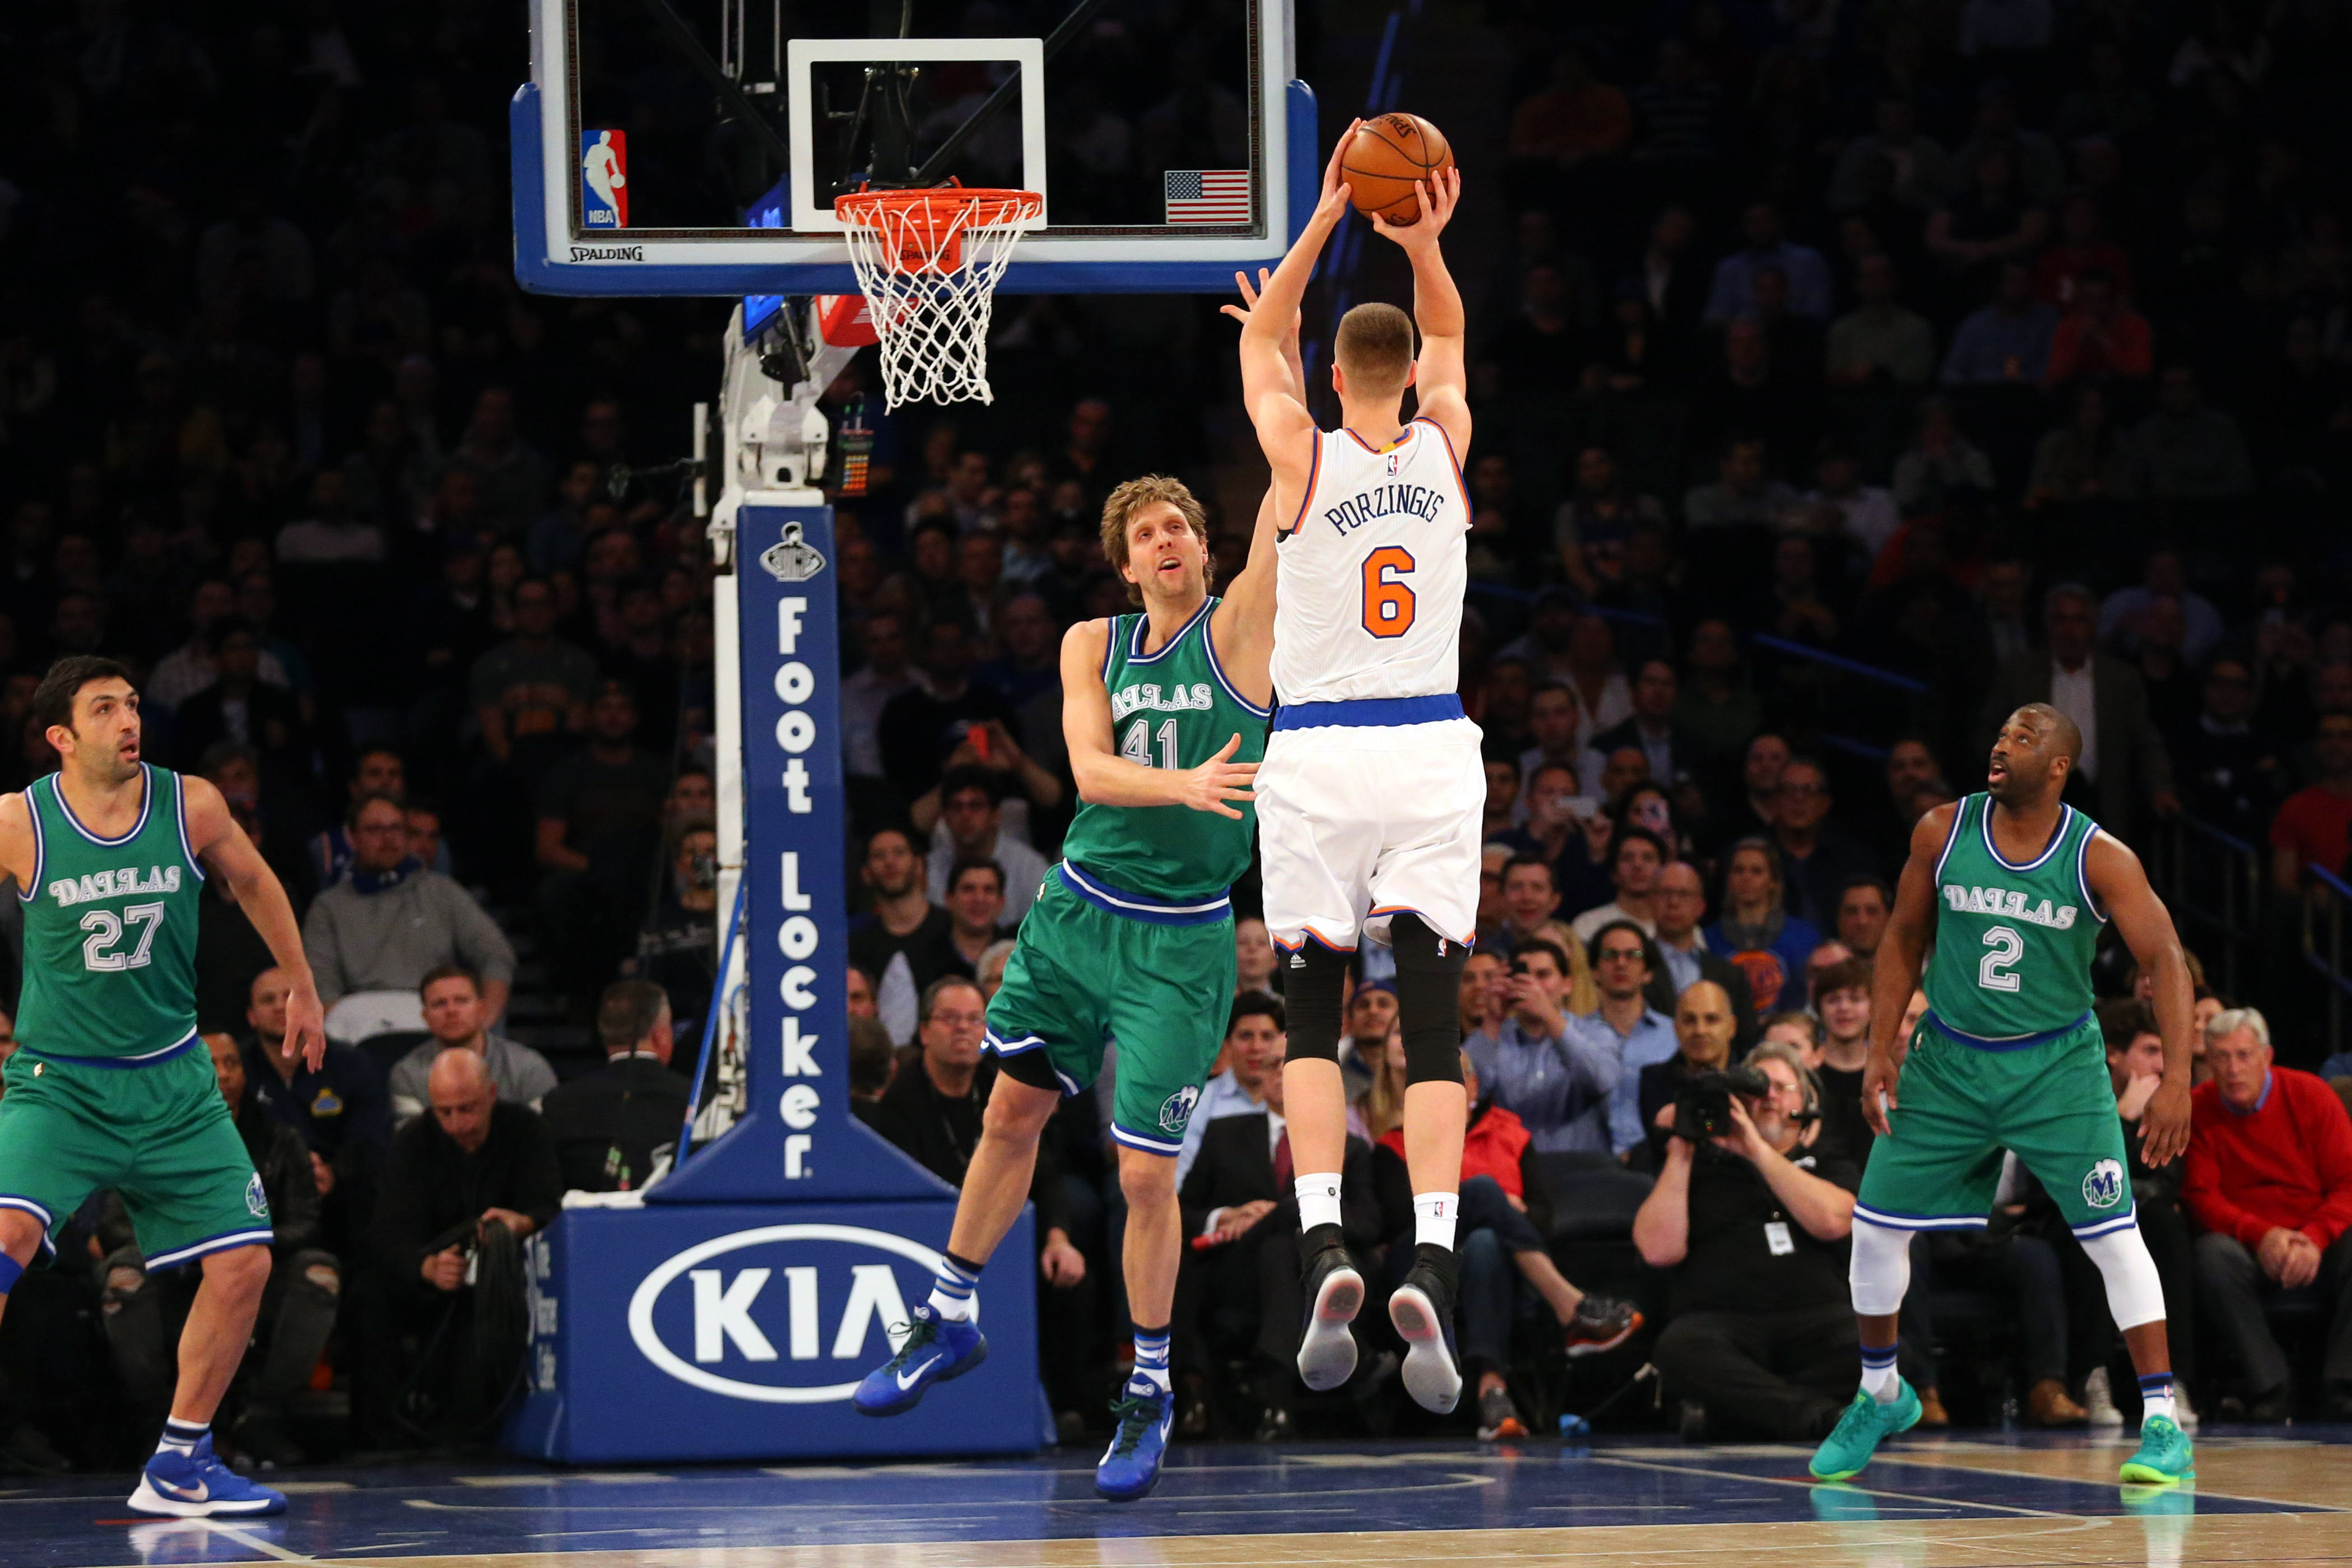 8983096-nba-dallas-mavericks-at-new-york-knicks